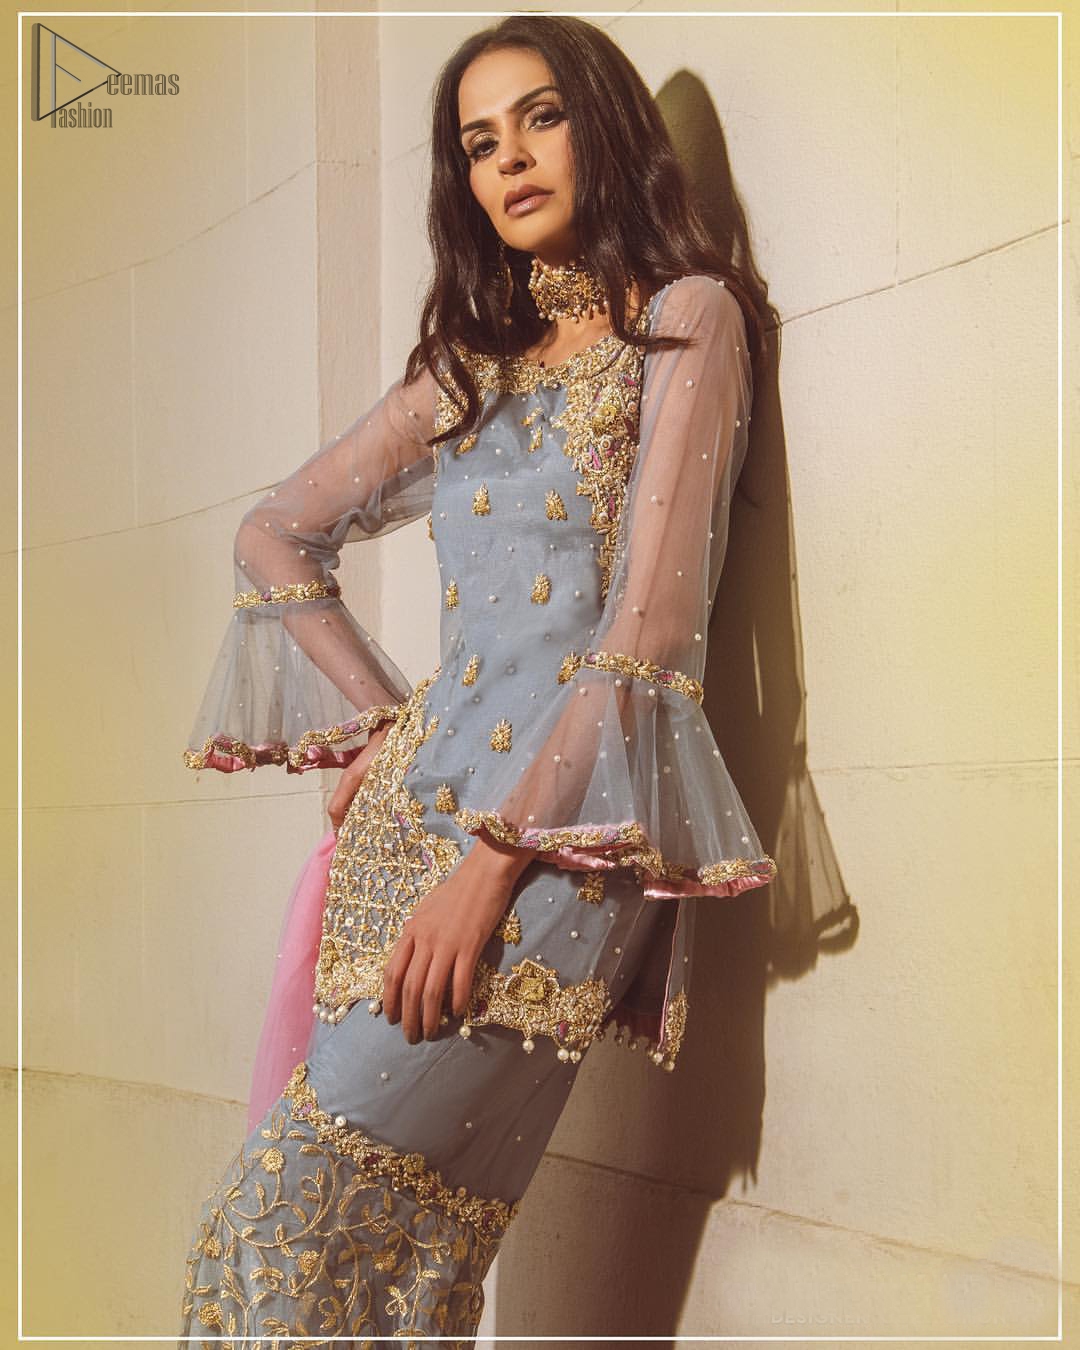 Embrace the season of festivities with this beautiful dress. The chic yet elegant outfit is decorated with golden embroidery, embellished neckline and tiny floral motifs. Borders are even more enhanced with golden zardozi detailed patterns and finished with scallops and dangling balls. Pair it up with gray sharara highlighted with floral jaal and scalloped bottom done with golden kora, dabka and tilla work. The look is complete with pink net dupatta sprinkled with sequins all over.